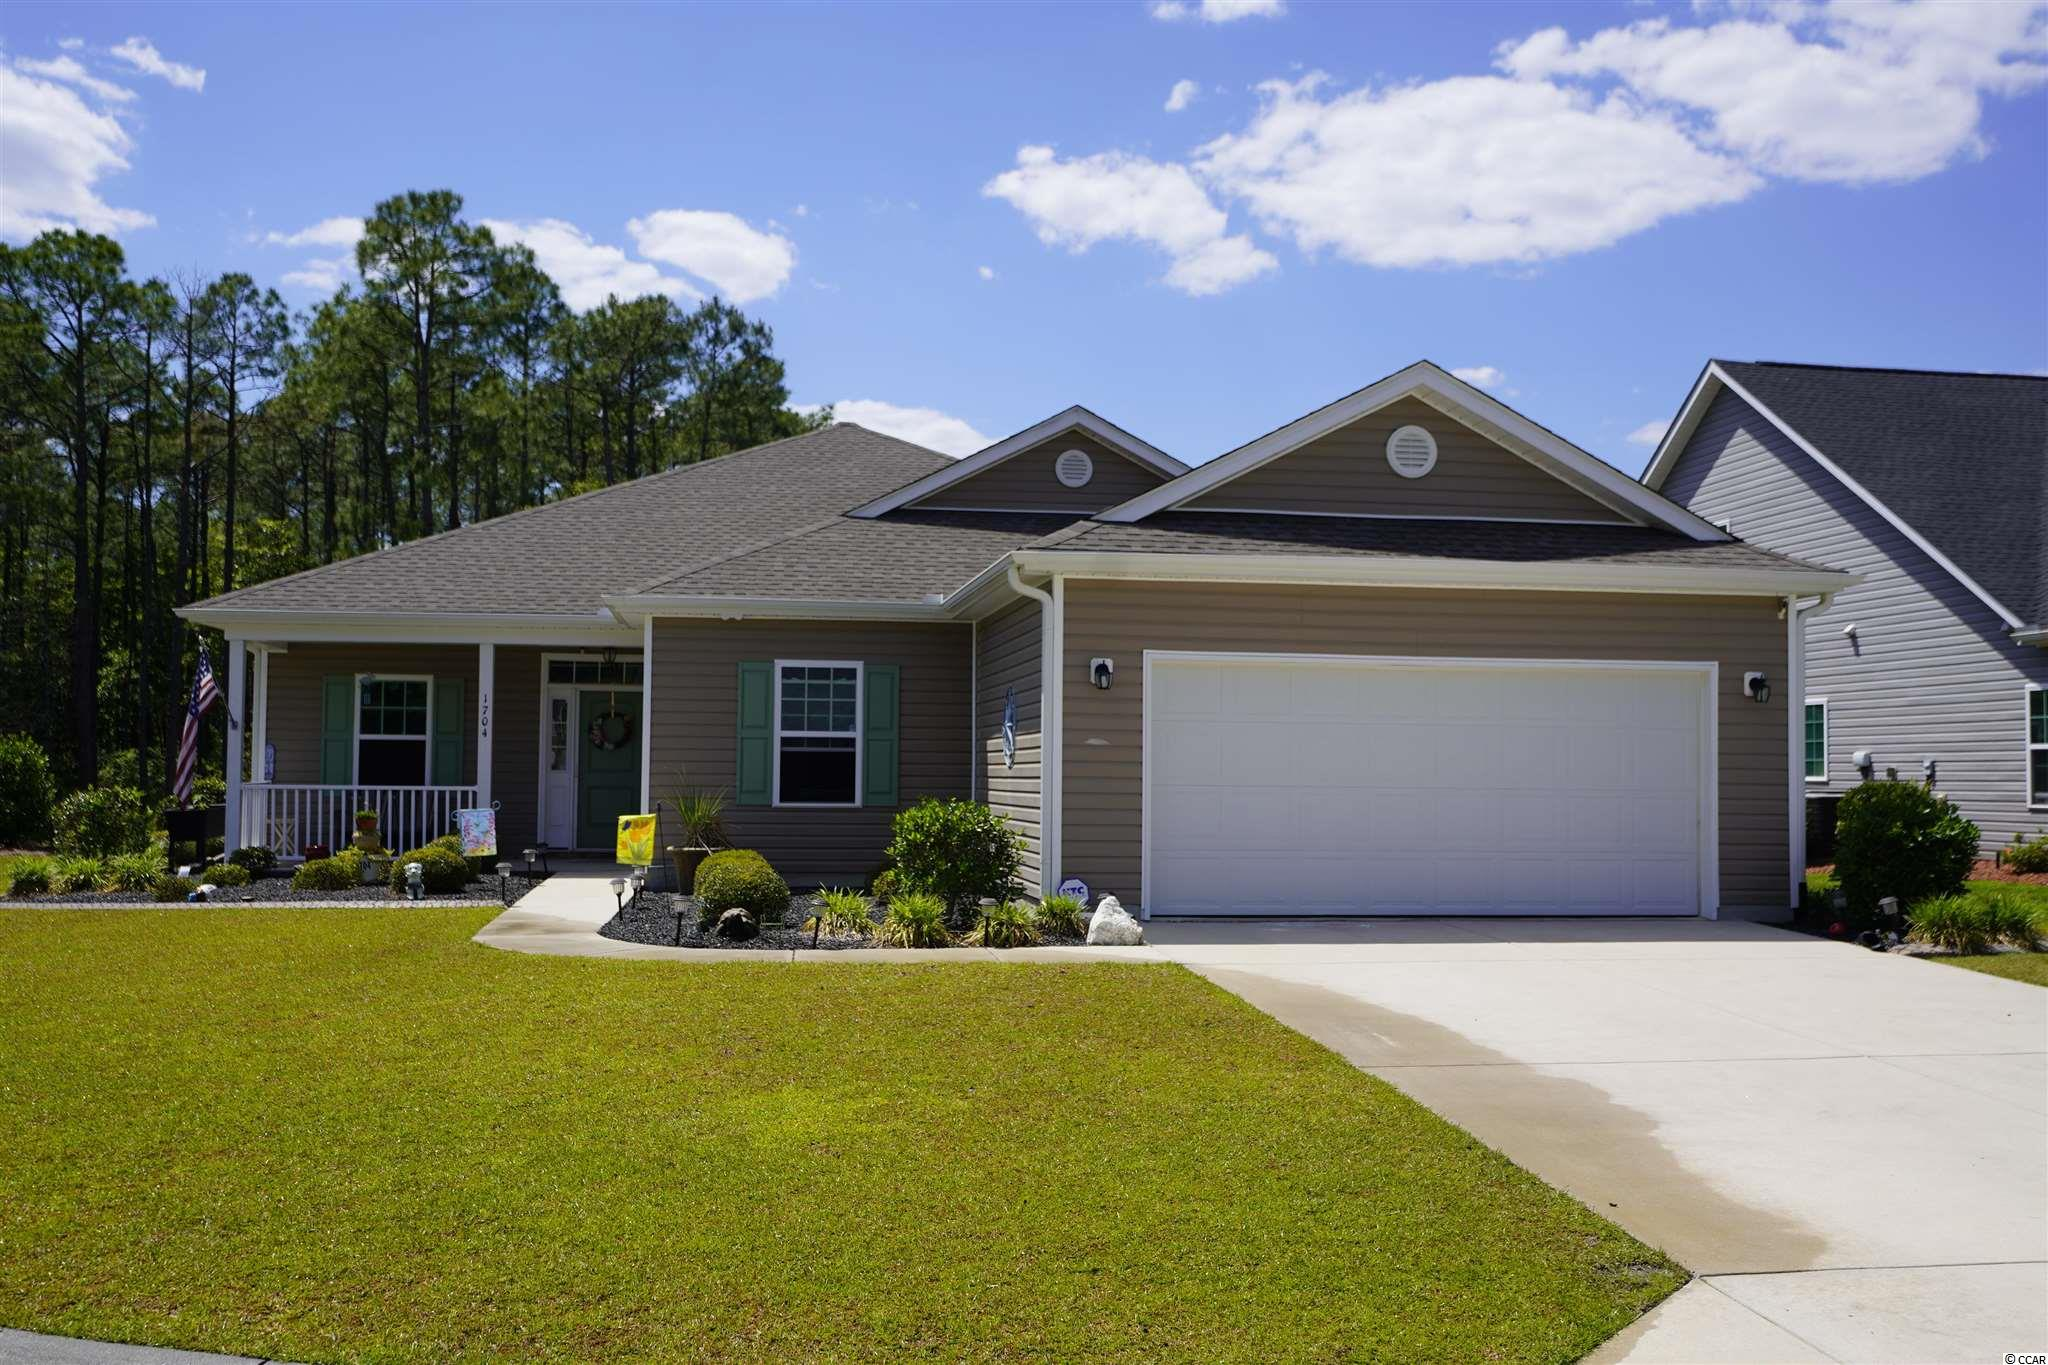 Located just 15 minutes from the beach with quick access to Hwy 31 is this 3 bedroom, 2 Bath home. This is the Welbourne Floor Plan built by RS Parker Homes in 2015. The home features tile, wood and carpet flooring, granite countertops, ceiling fans in all bedrooms and living room and a propane gas fireplace in the living room.  This home also has a very spacious covered screen porch, finished garage, whole house surge protector, fenced back yard, curbscaping, irrigation system and is located on a cul de sac street. The community has a pool, clubhouse and kids playground located just a short distance from the home. All appliances convey including washer and dryer (except deep freezer and refrigerator in garage). The home has great curb appeal and is a must see!! Call to schedule an in person viewing of this lovely home.